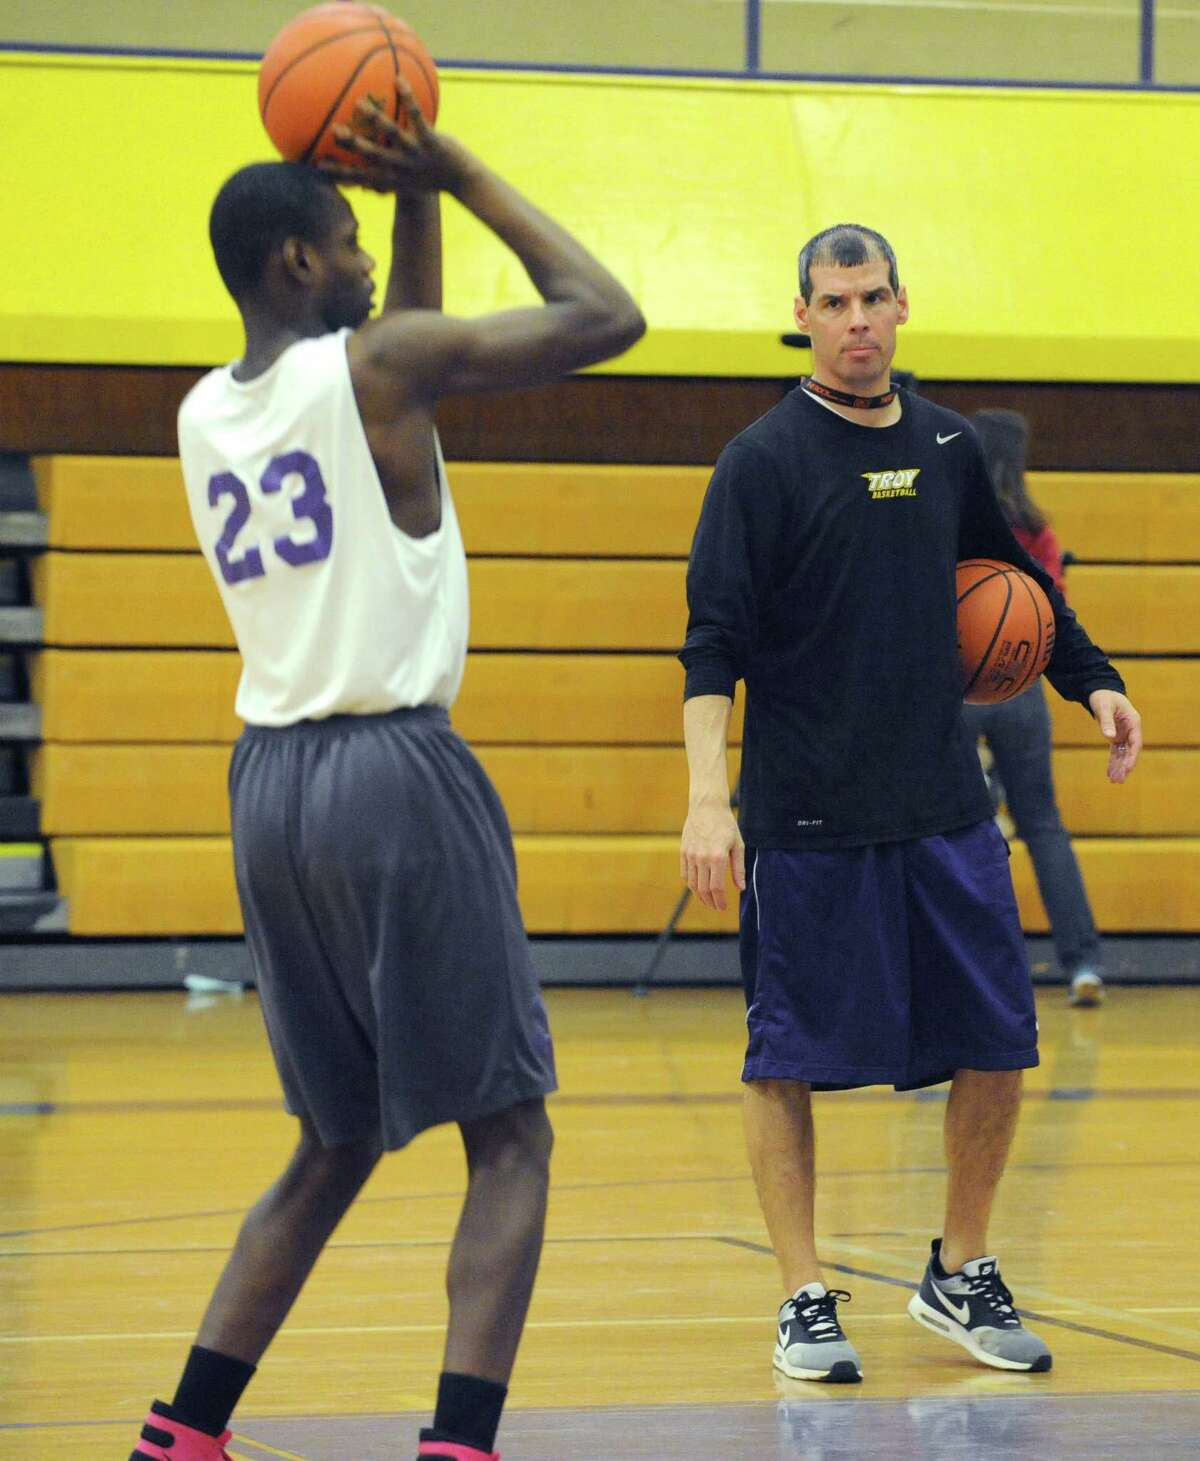 Troy High School basketball coach Rich Hurley puts his team through a practice on Thursday March 10, 2016 in Troy, N.Y. (Michael P. Farrell/Times Union)